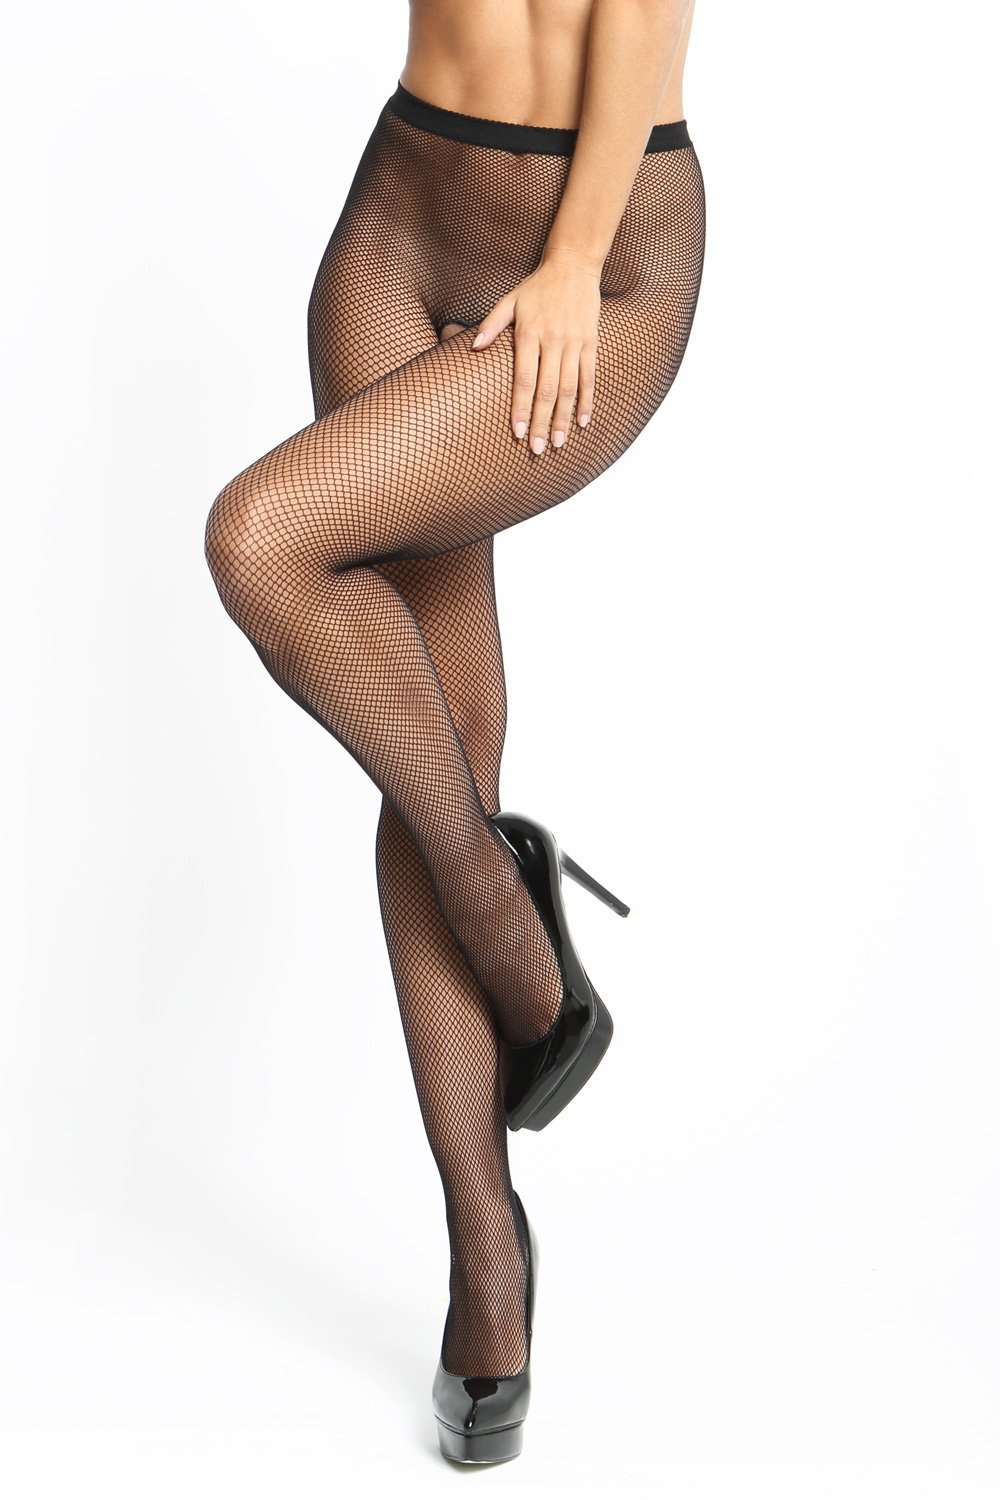 missO Open Crotch Fishnet Tights 20 Denier